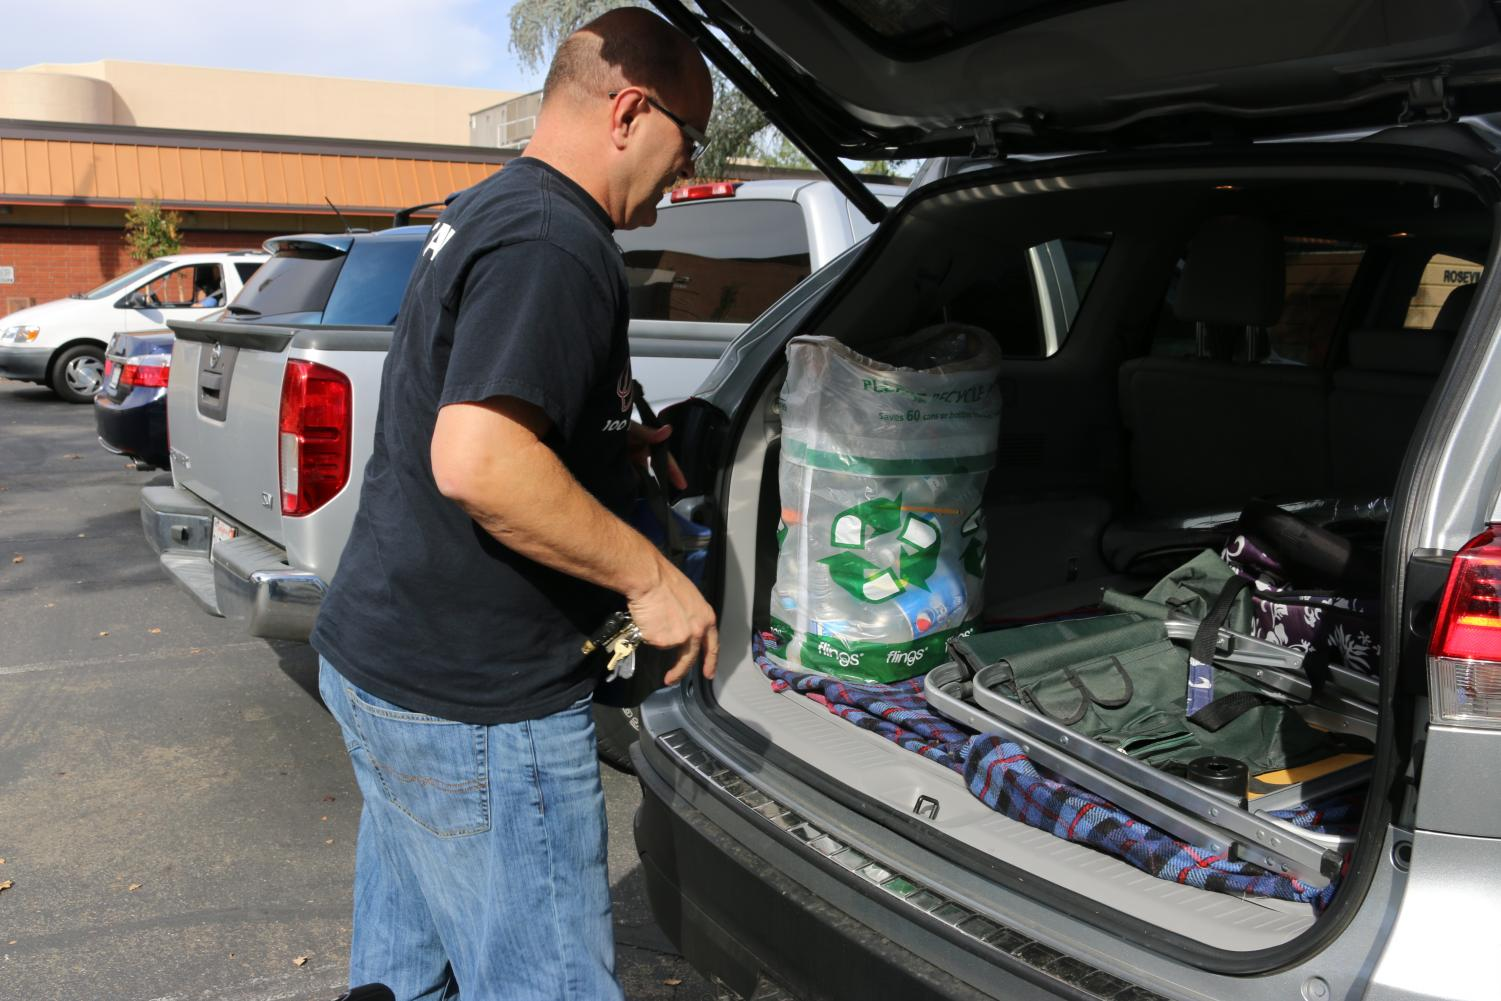 Math teacher David Ray takes out the recycling he's collected over the week and prepares to drive it out to a recycling center. He decision to begin recycling resides in a desire to get a head start on his son's college funds.